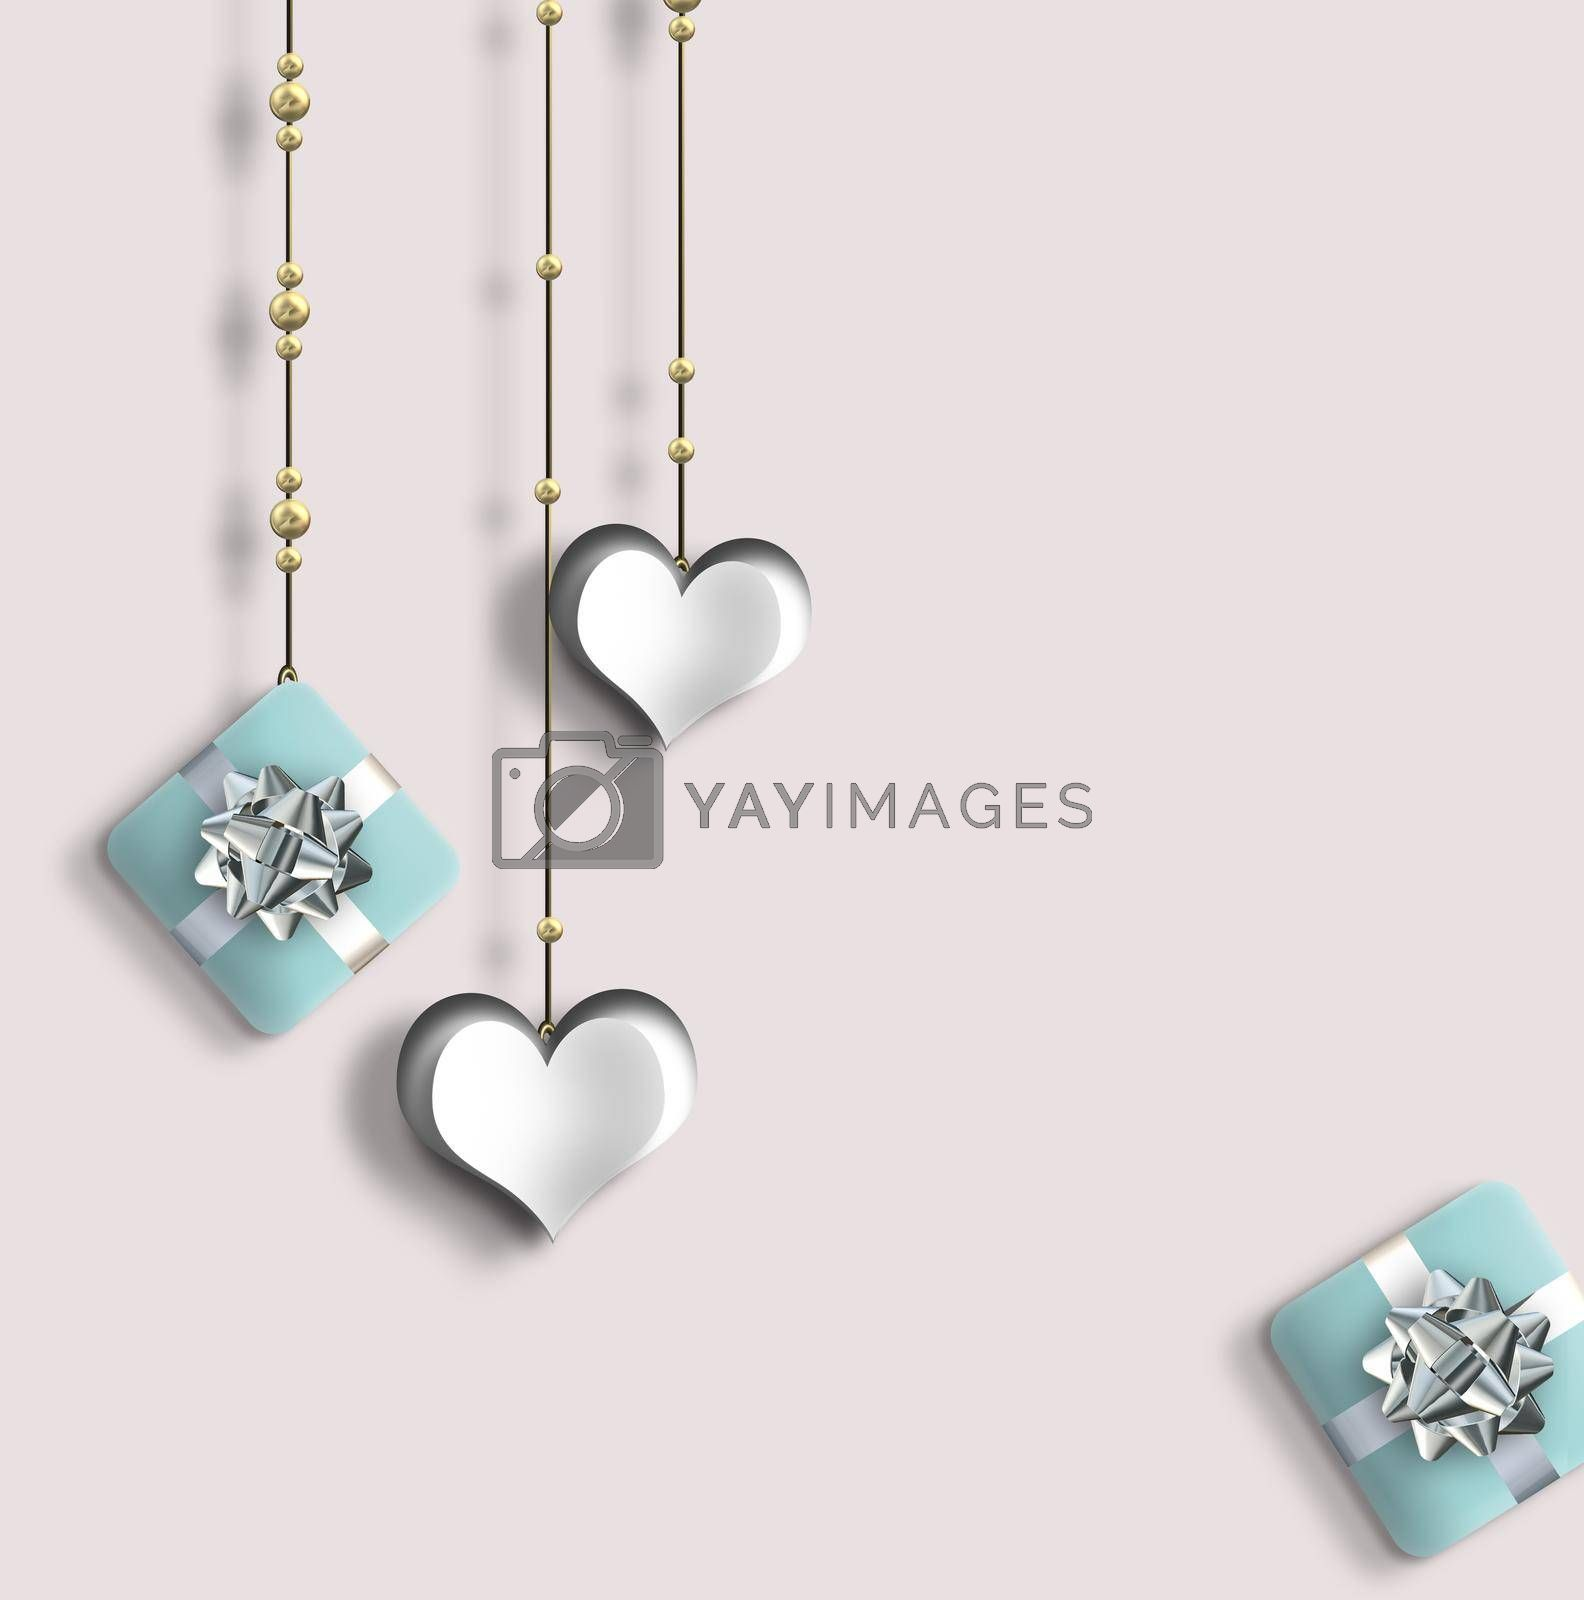 Pretty love card, Valentines card with hanging paper hearts, gift boxes on pastel pink background. 3D Illustration